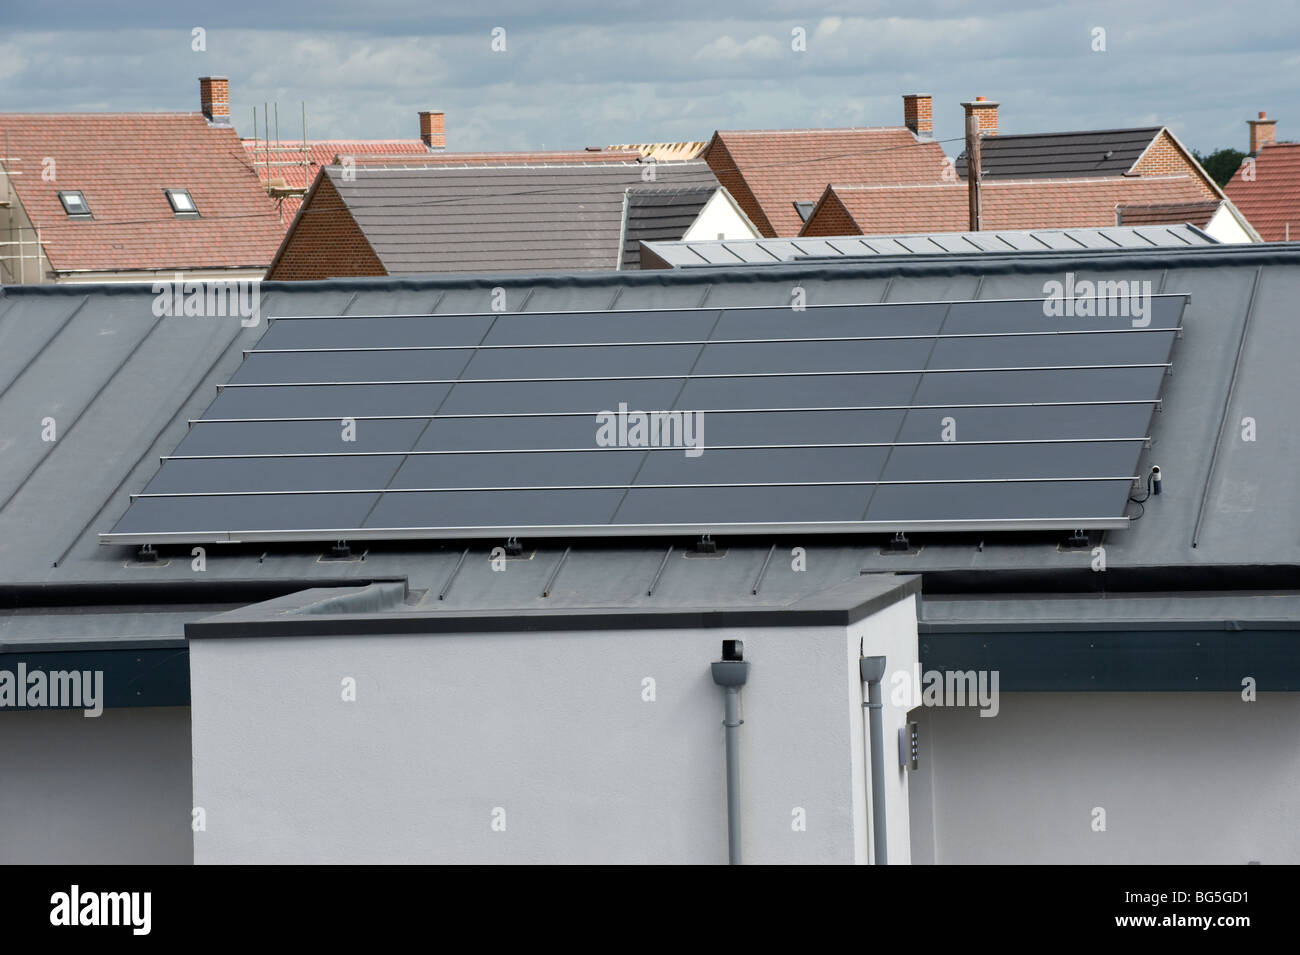 Roof-mounted photo voltaic solar panels on a new housing estate - Stock Image